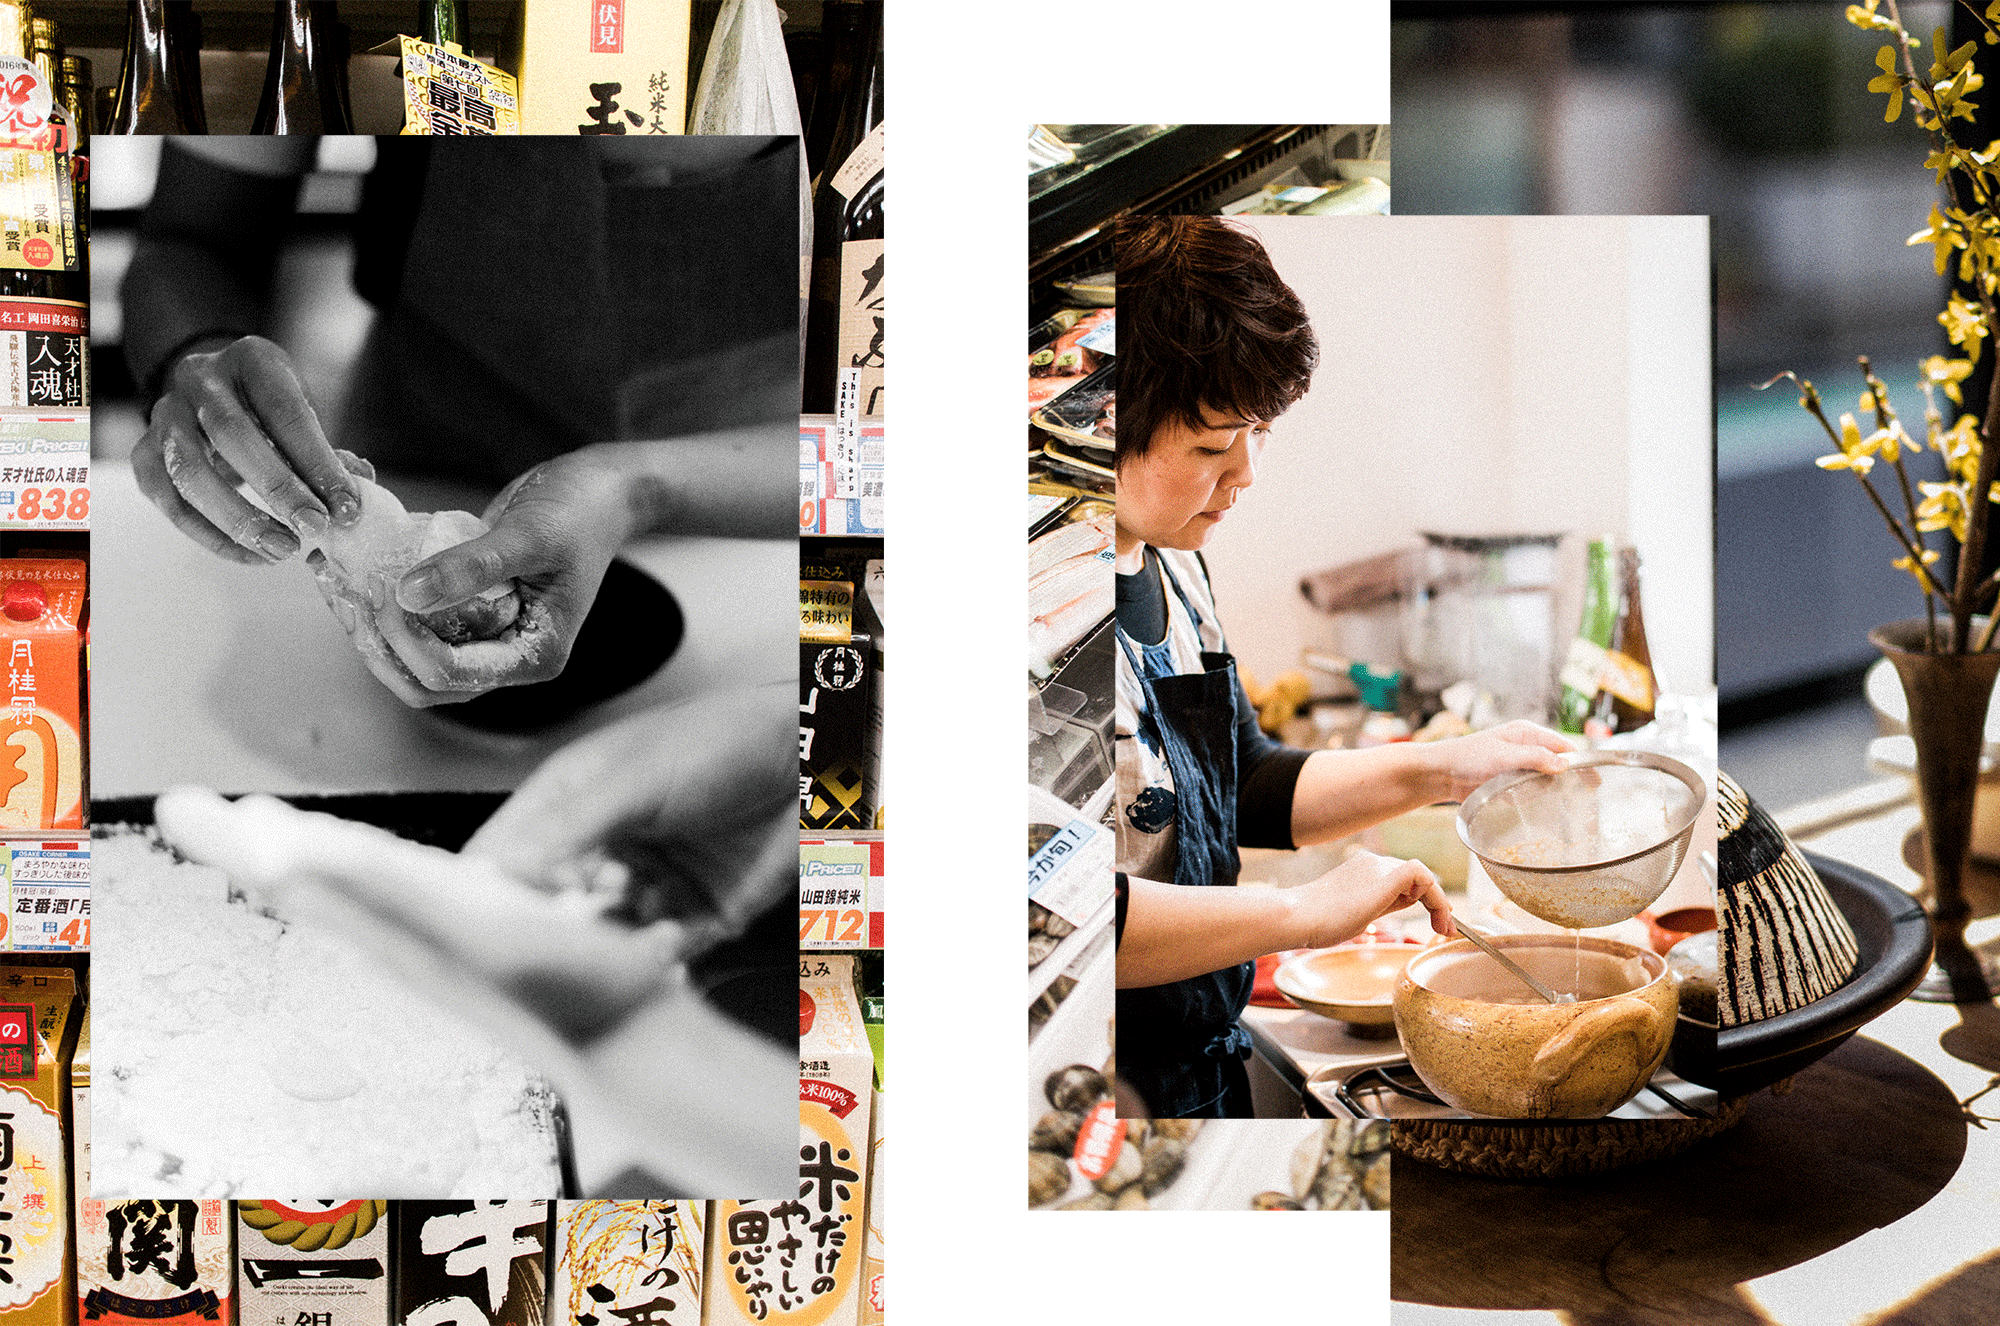 AirBnB Experience: Shop / Cook / Eat Local with Tokyo Cooking Studio - Travel & Food Guide to Tokyo with IheartAlice.com